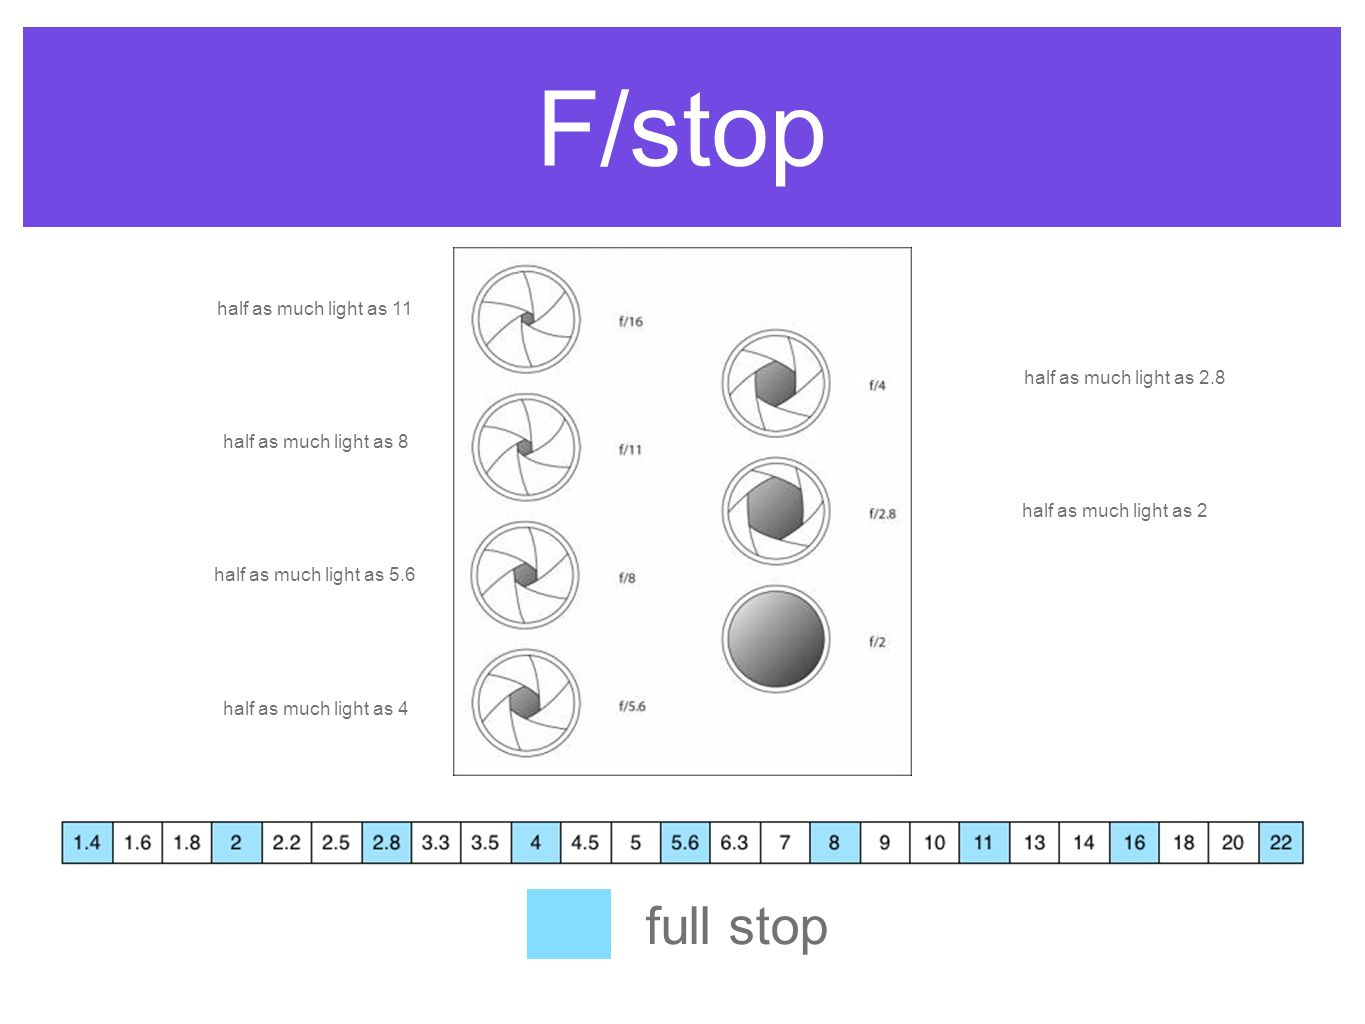 F/stop full stop half as much light as 2 half as much light as 2.8 half as much light as 4 half as much light as 5.6 half as much light as 8 half as m